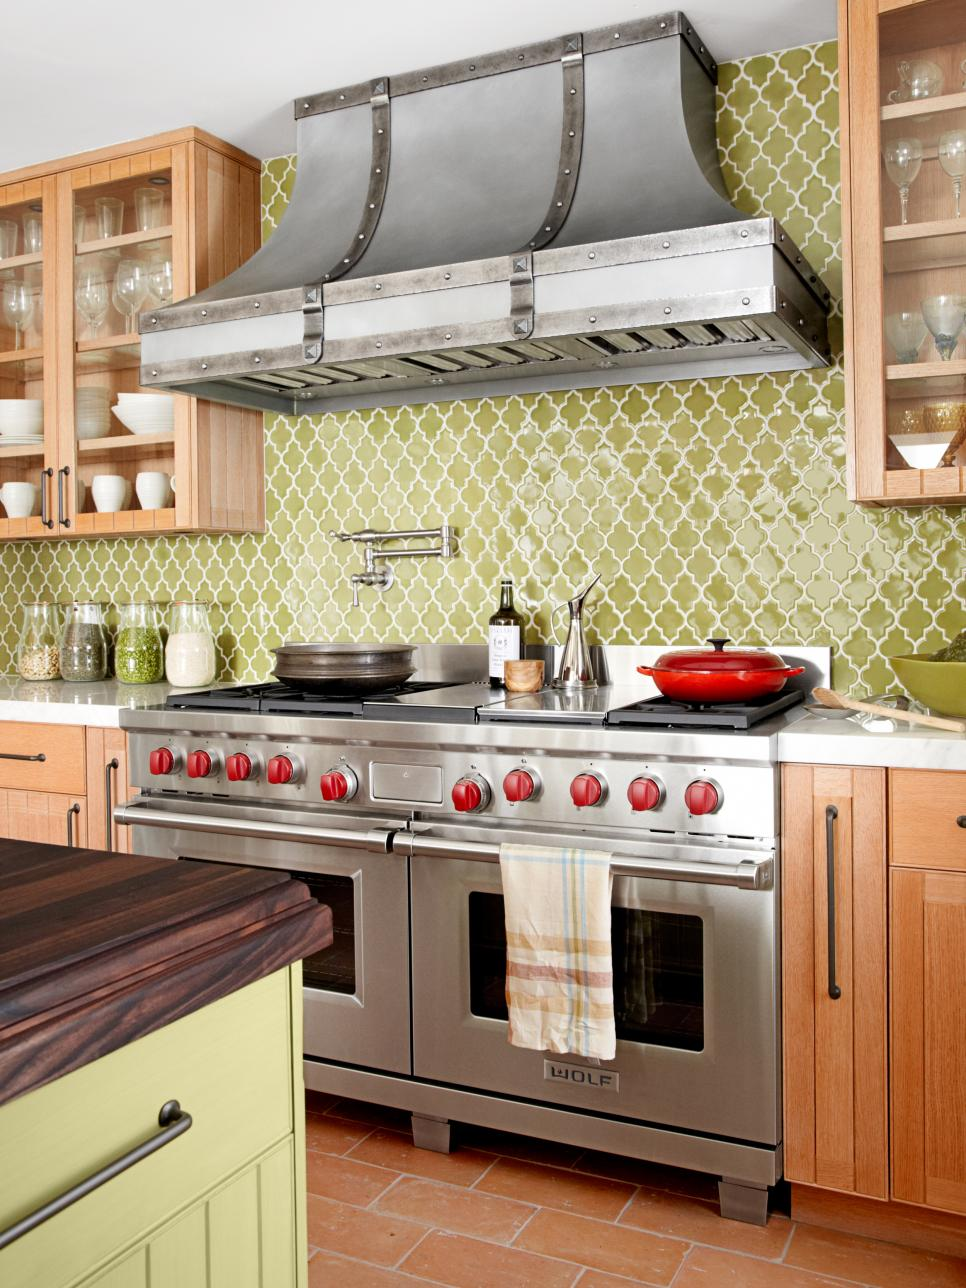 Dreamy kitchen backsplashes hgtv - Backsplash ideas kitchen ...